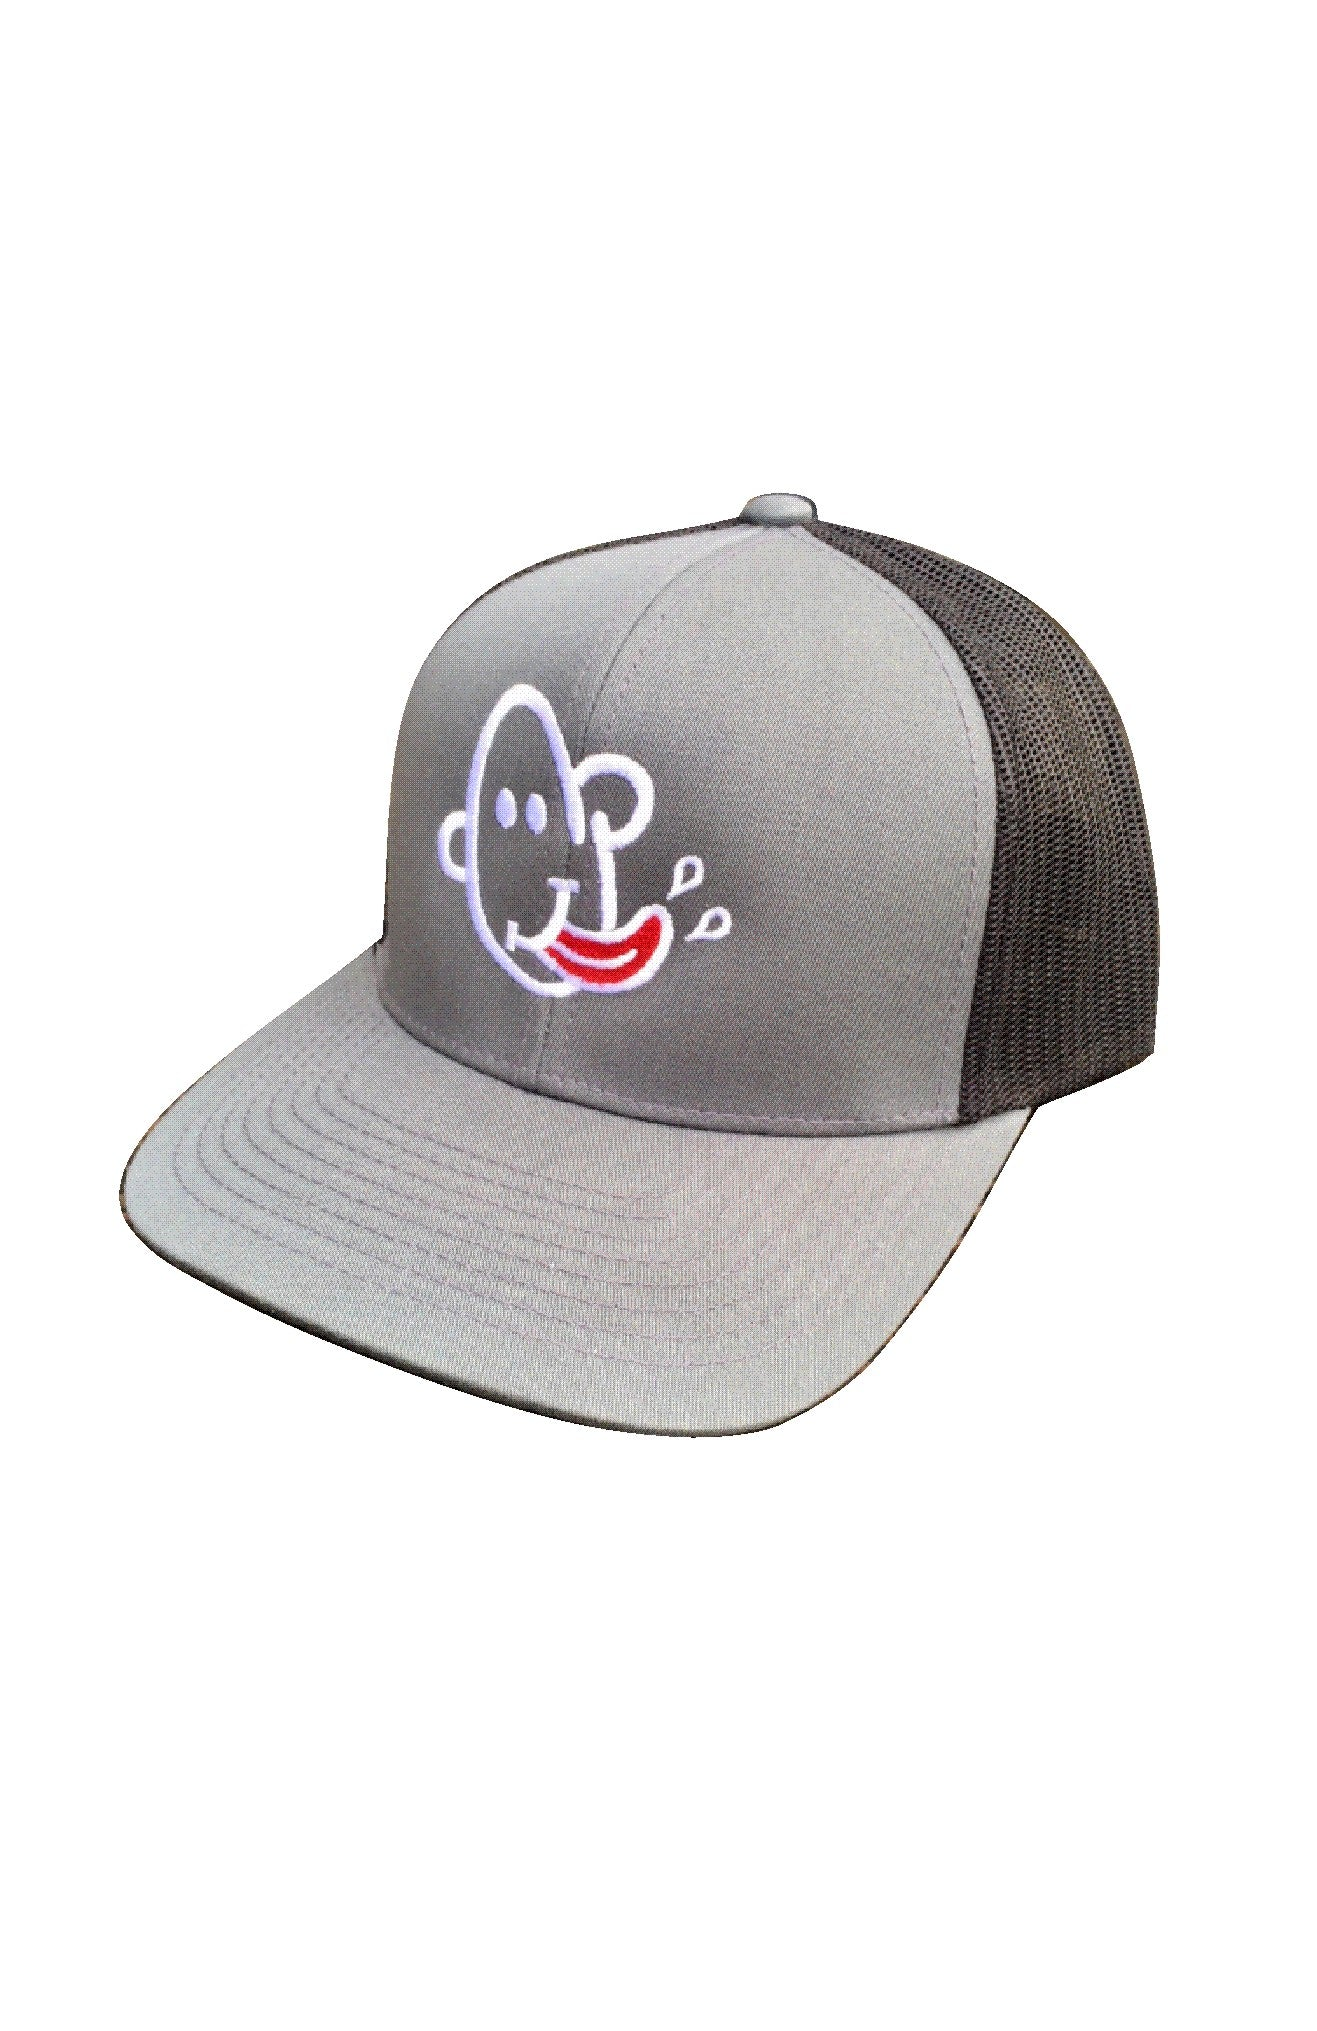 Grey & black Mesh back trucker cap with Grubwear Slurp logo.